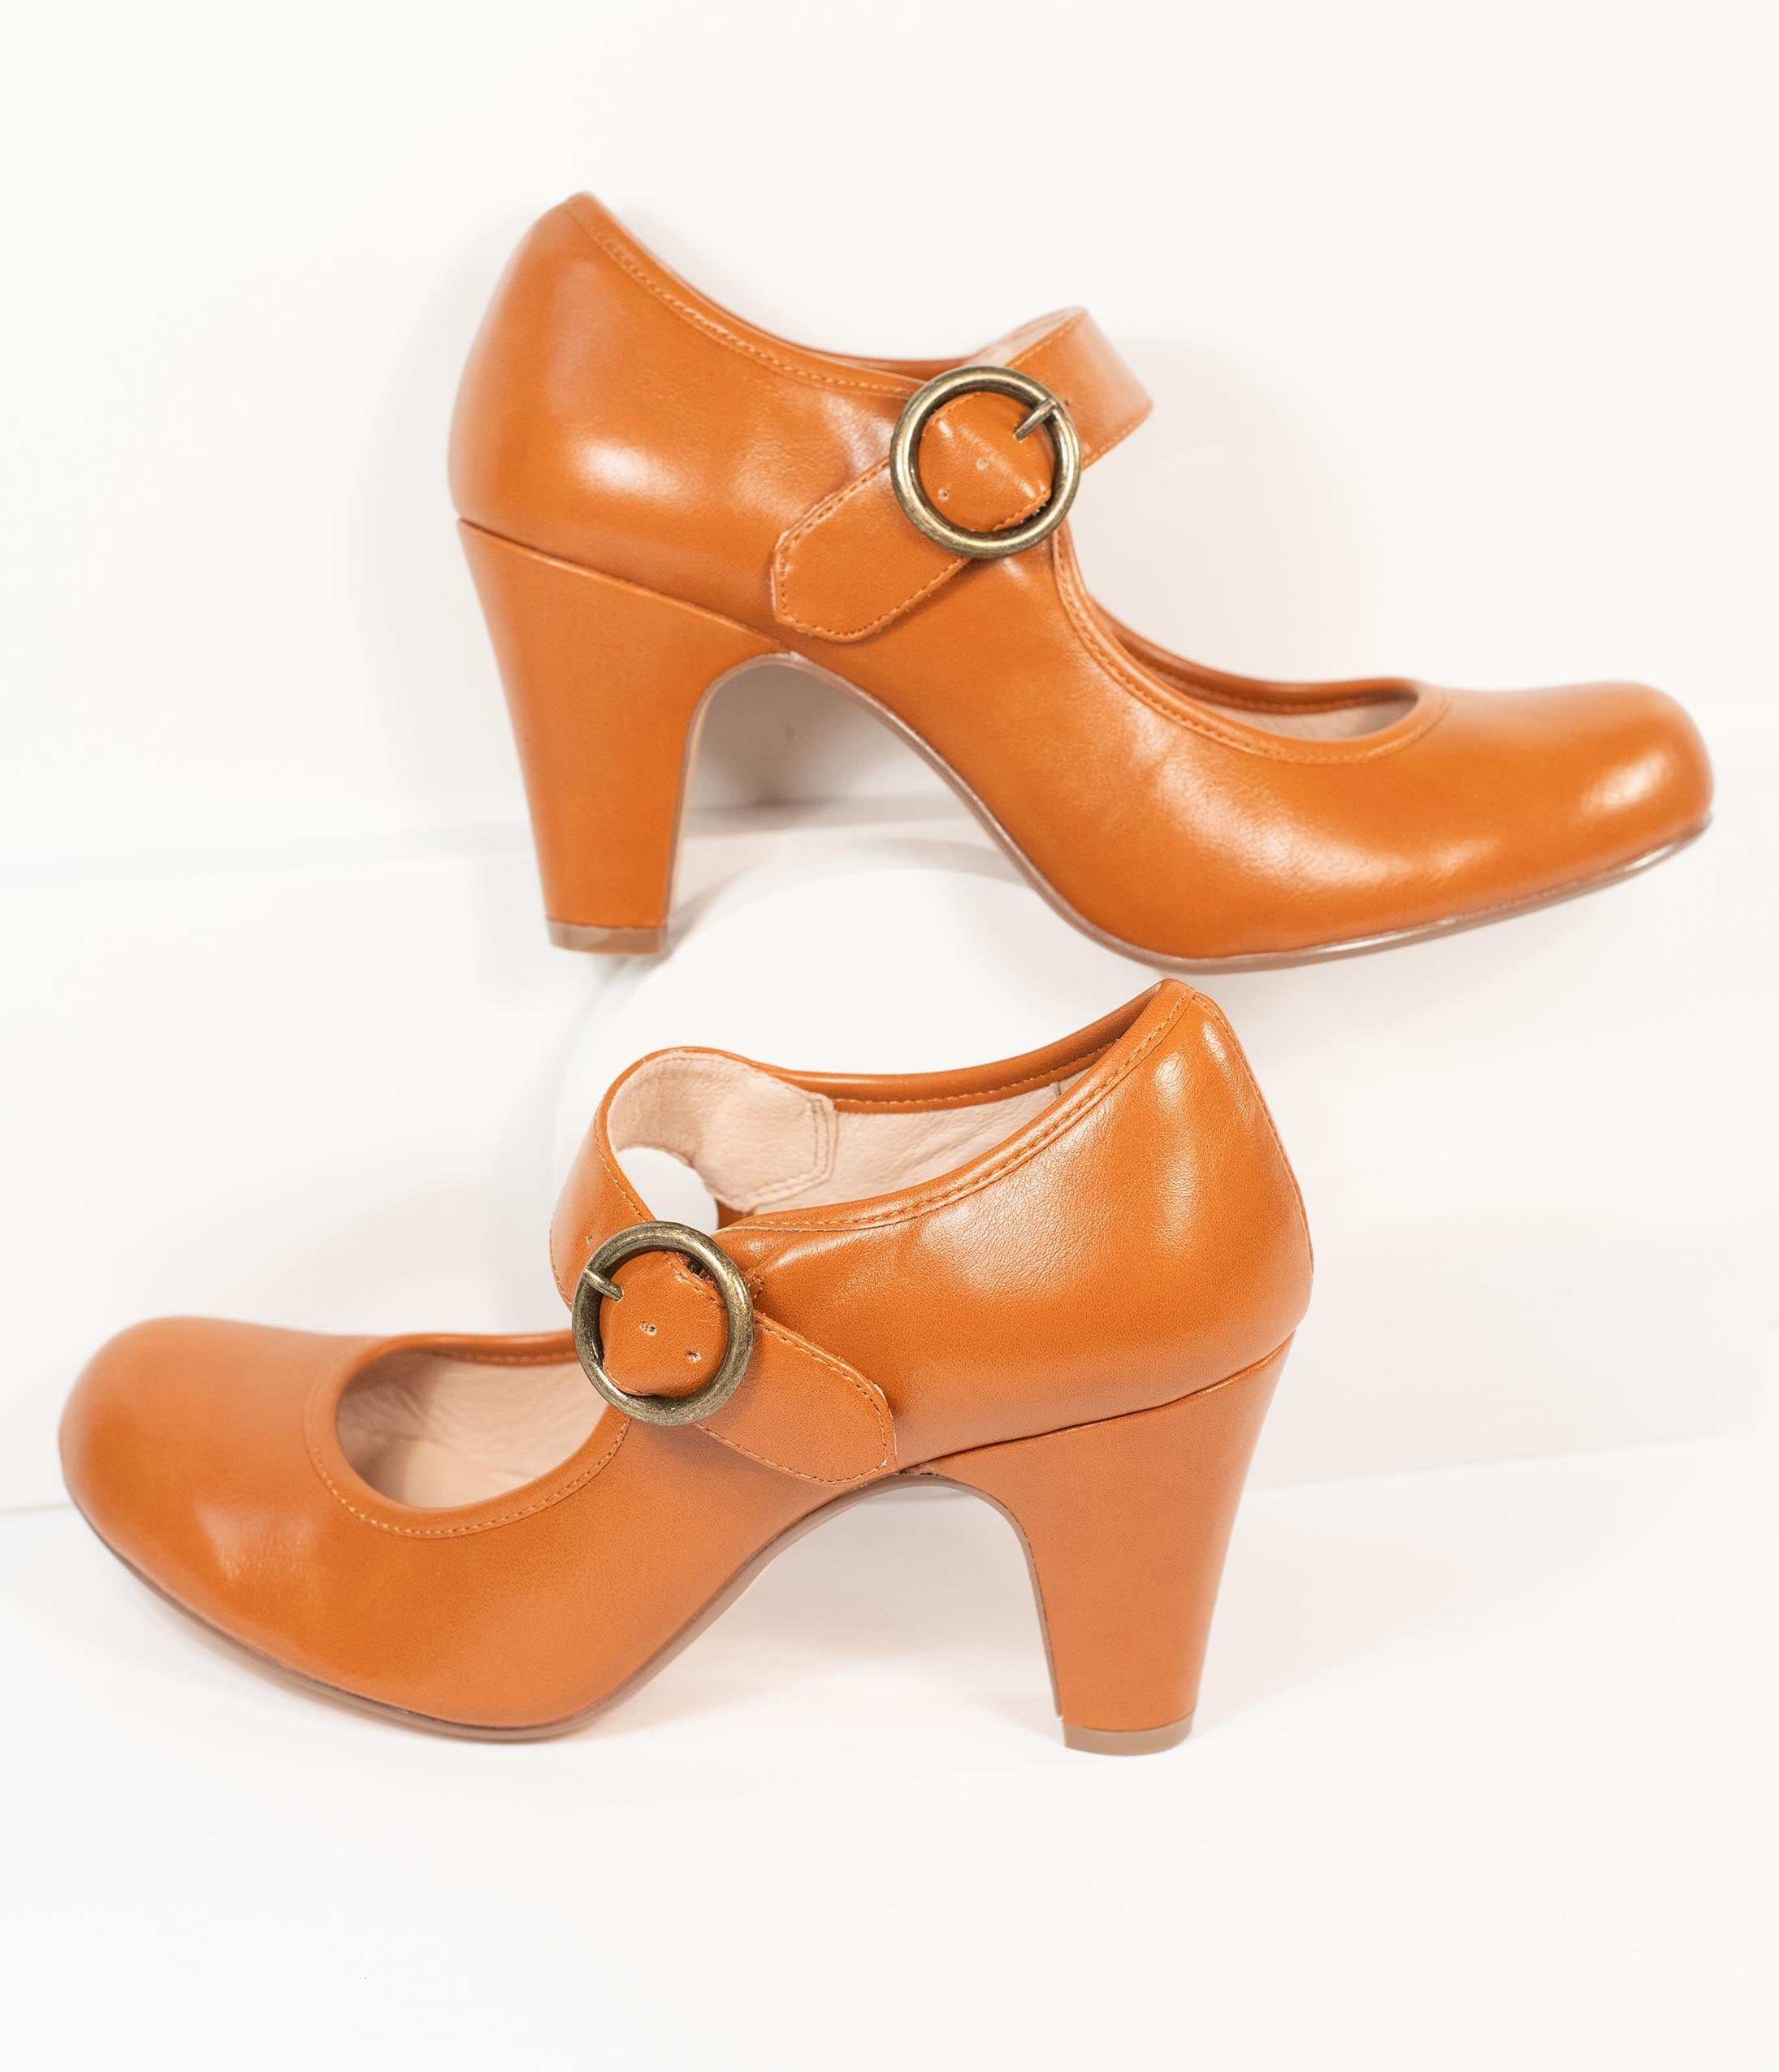 Vintage Heels, Retro Heels, Pumps, Shoes Chelsea Crew 1940S Brown Leatherette Madeline Pumps $82.00 AT vintagedancer.com